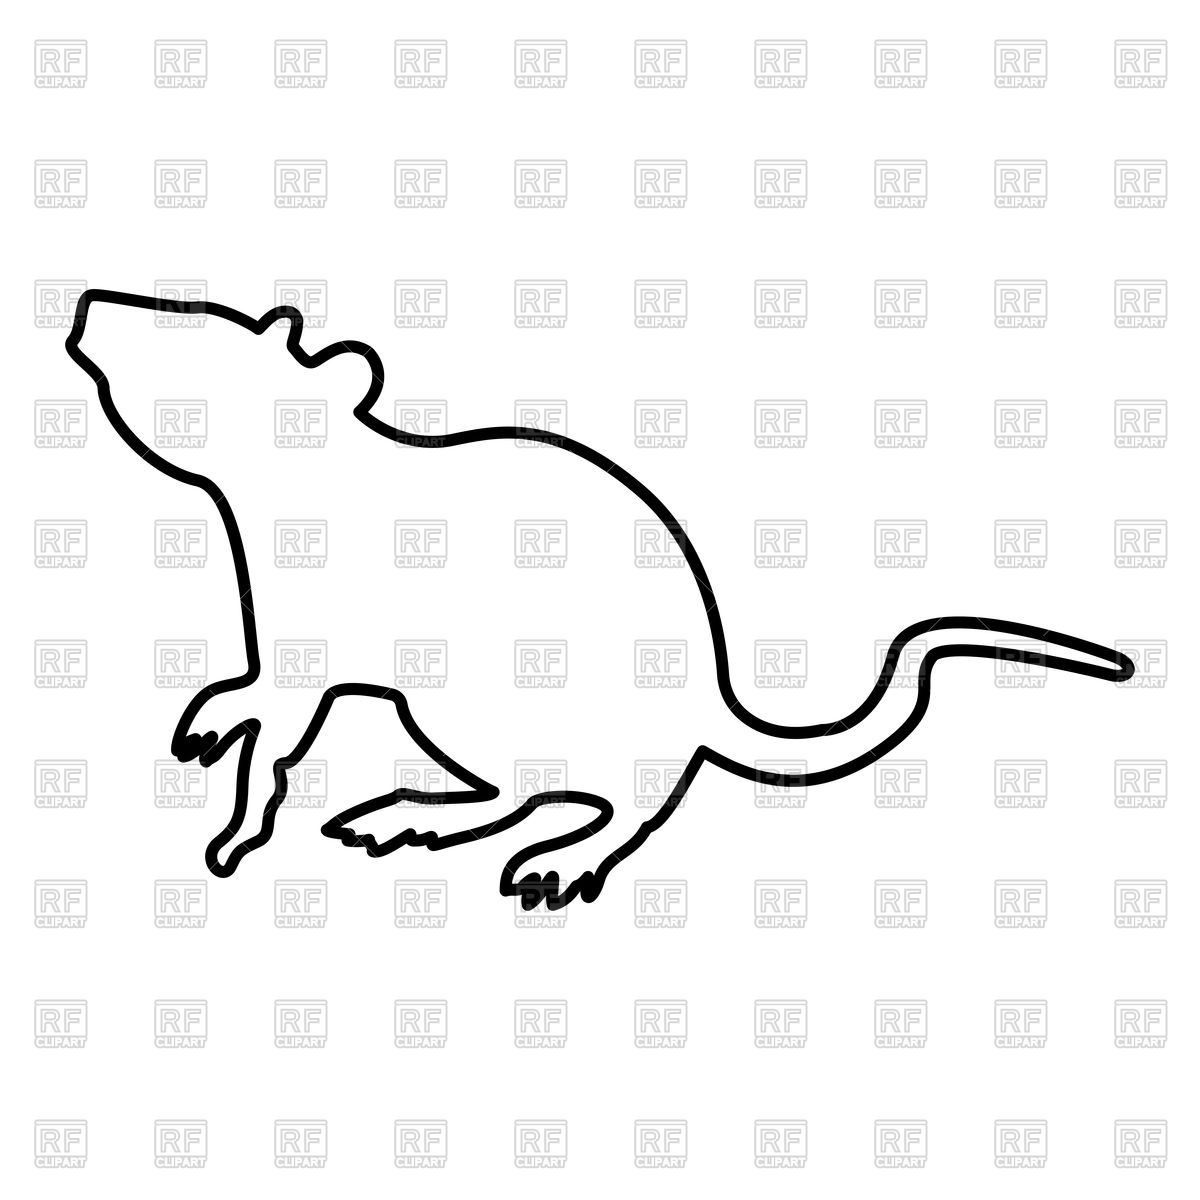 1200x1200 Rat Outline Royalty Free Vector Clip Art Image